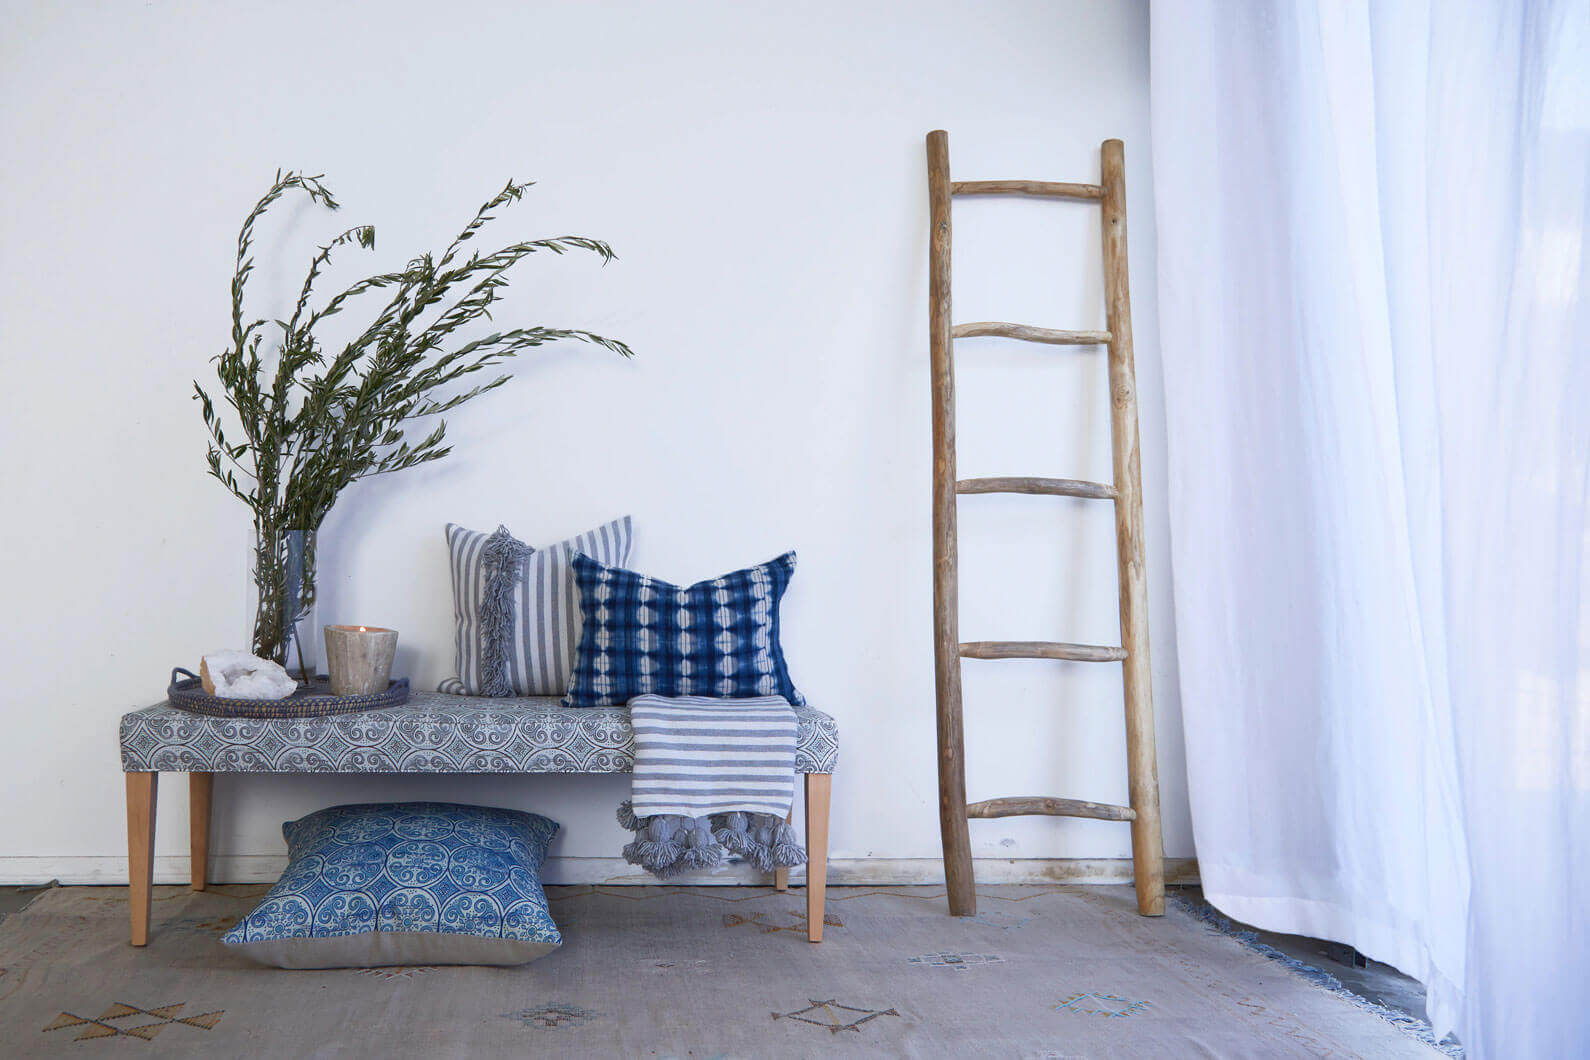 Bench with throw pillows next to wooden ladder